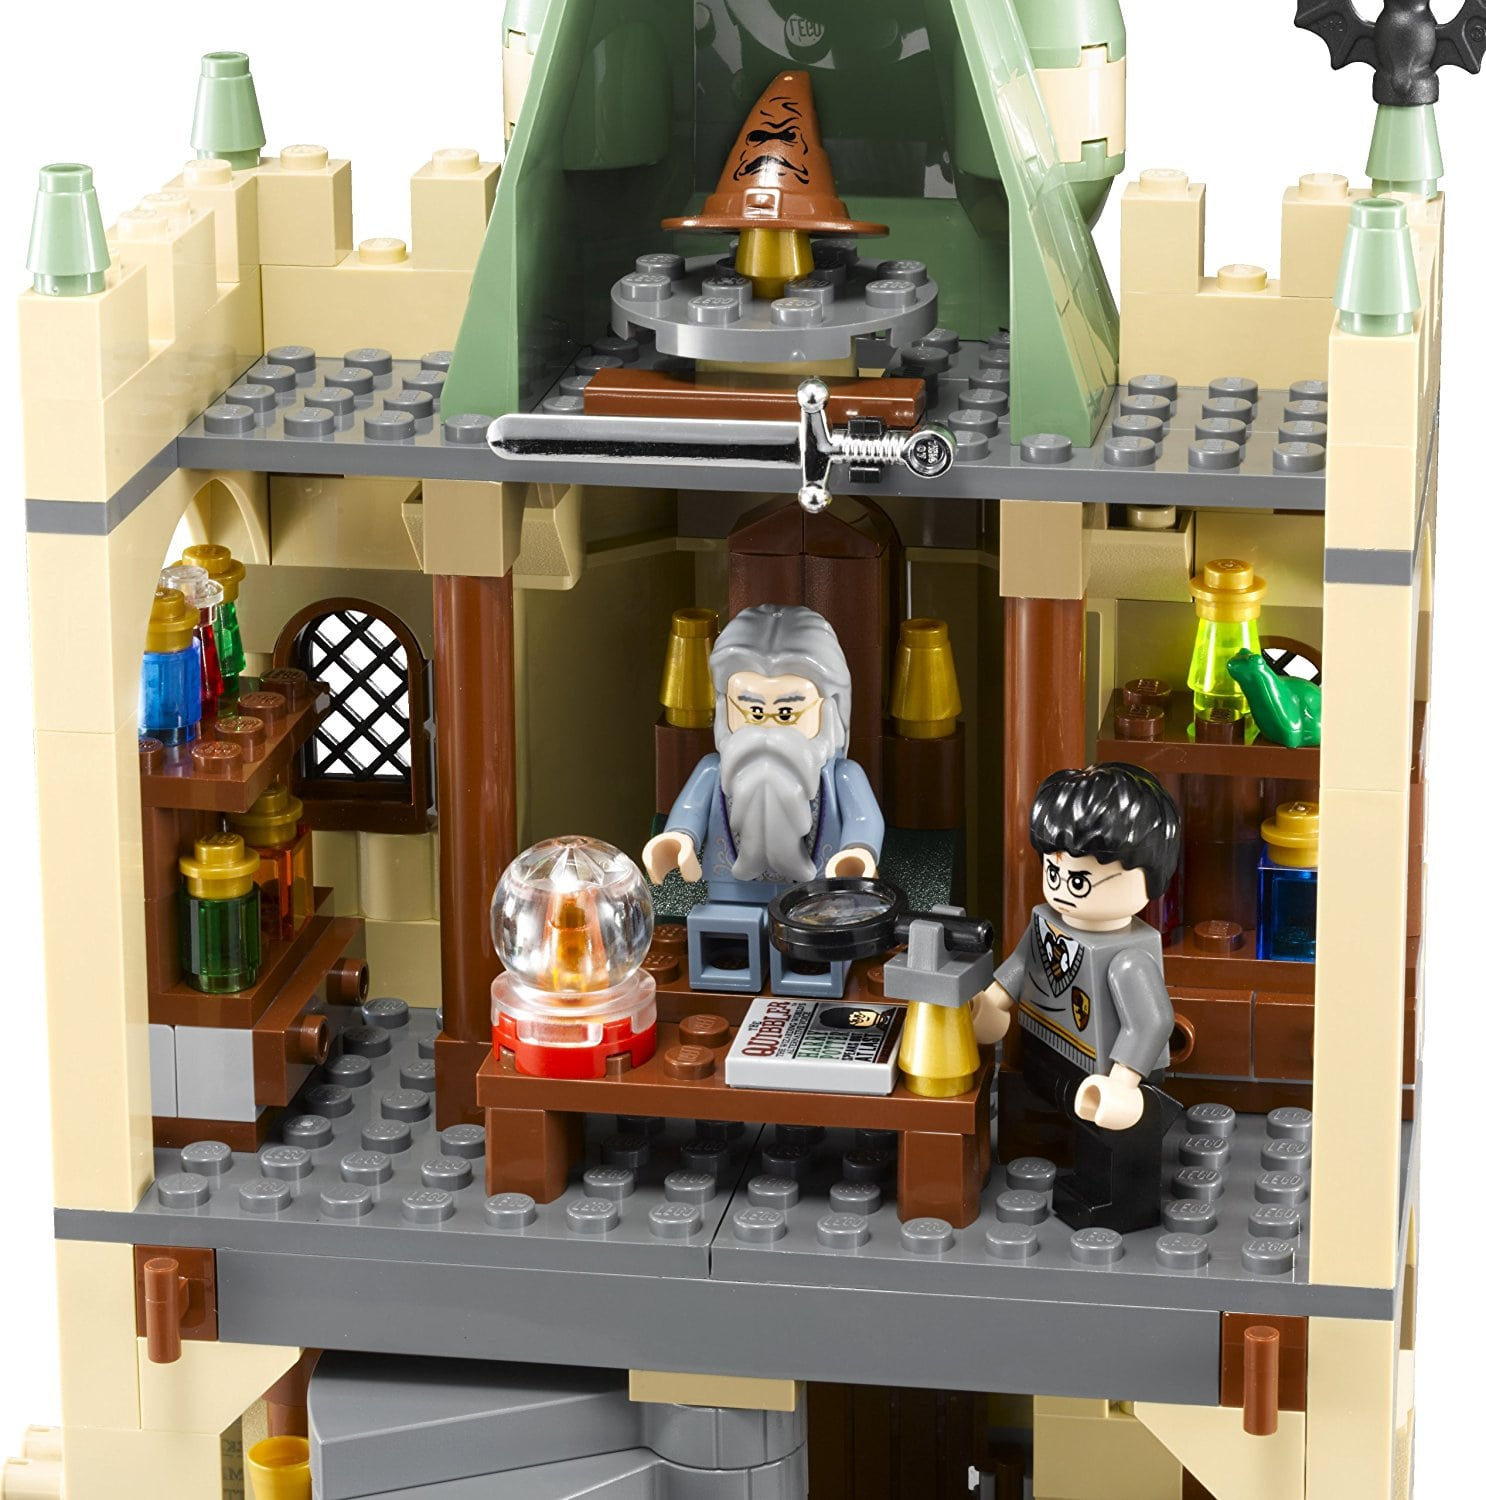 the room of Professor Dumbledore Lego